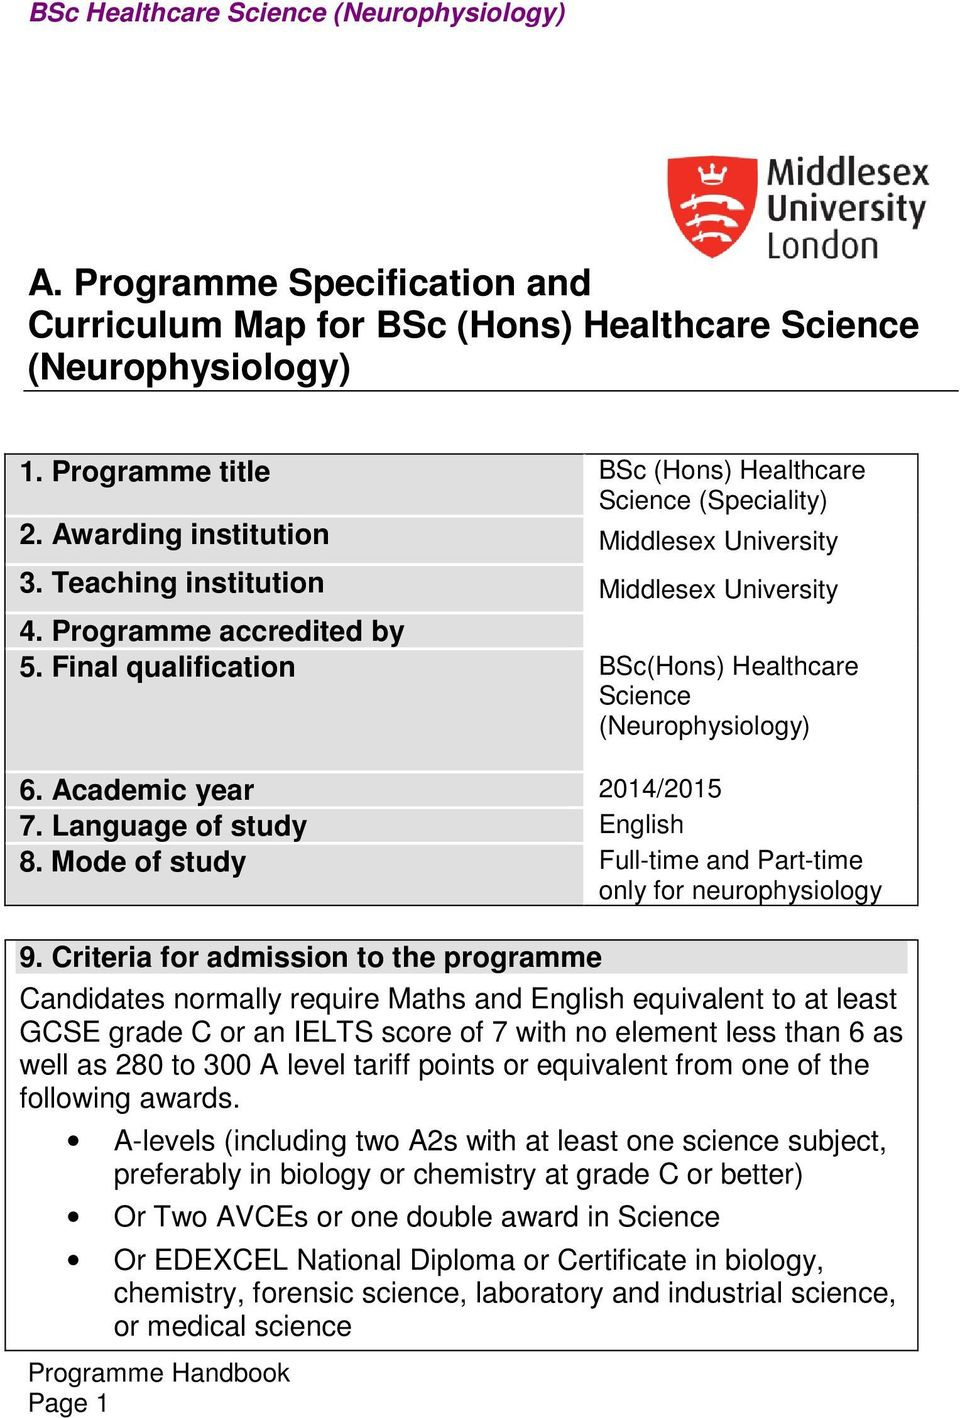 Final qualification BSc(Hons) Healthcare Science (Neurophysiology) 6. cademic year 2014/2015 7. Language of study English 8. Mode of study Full-time and Part-time only for neurophysiology 9.